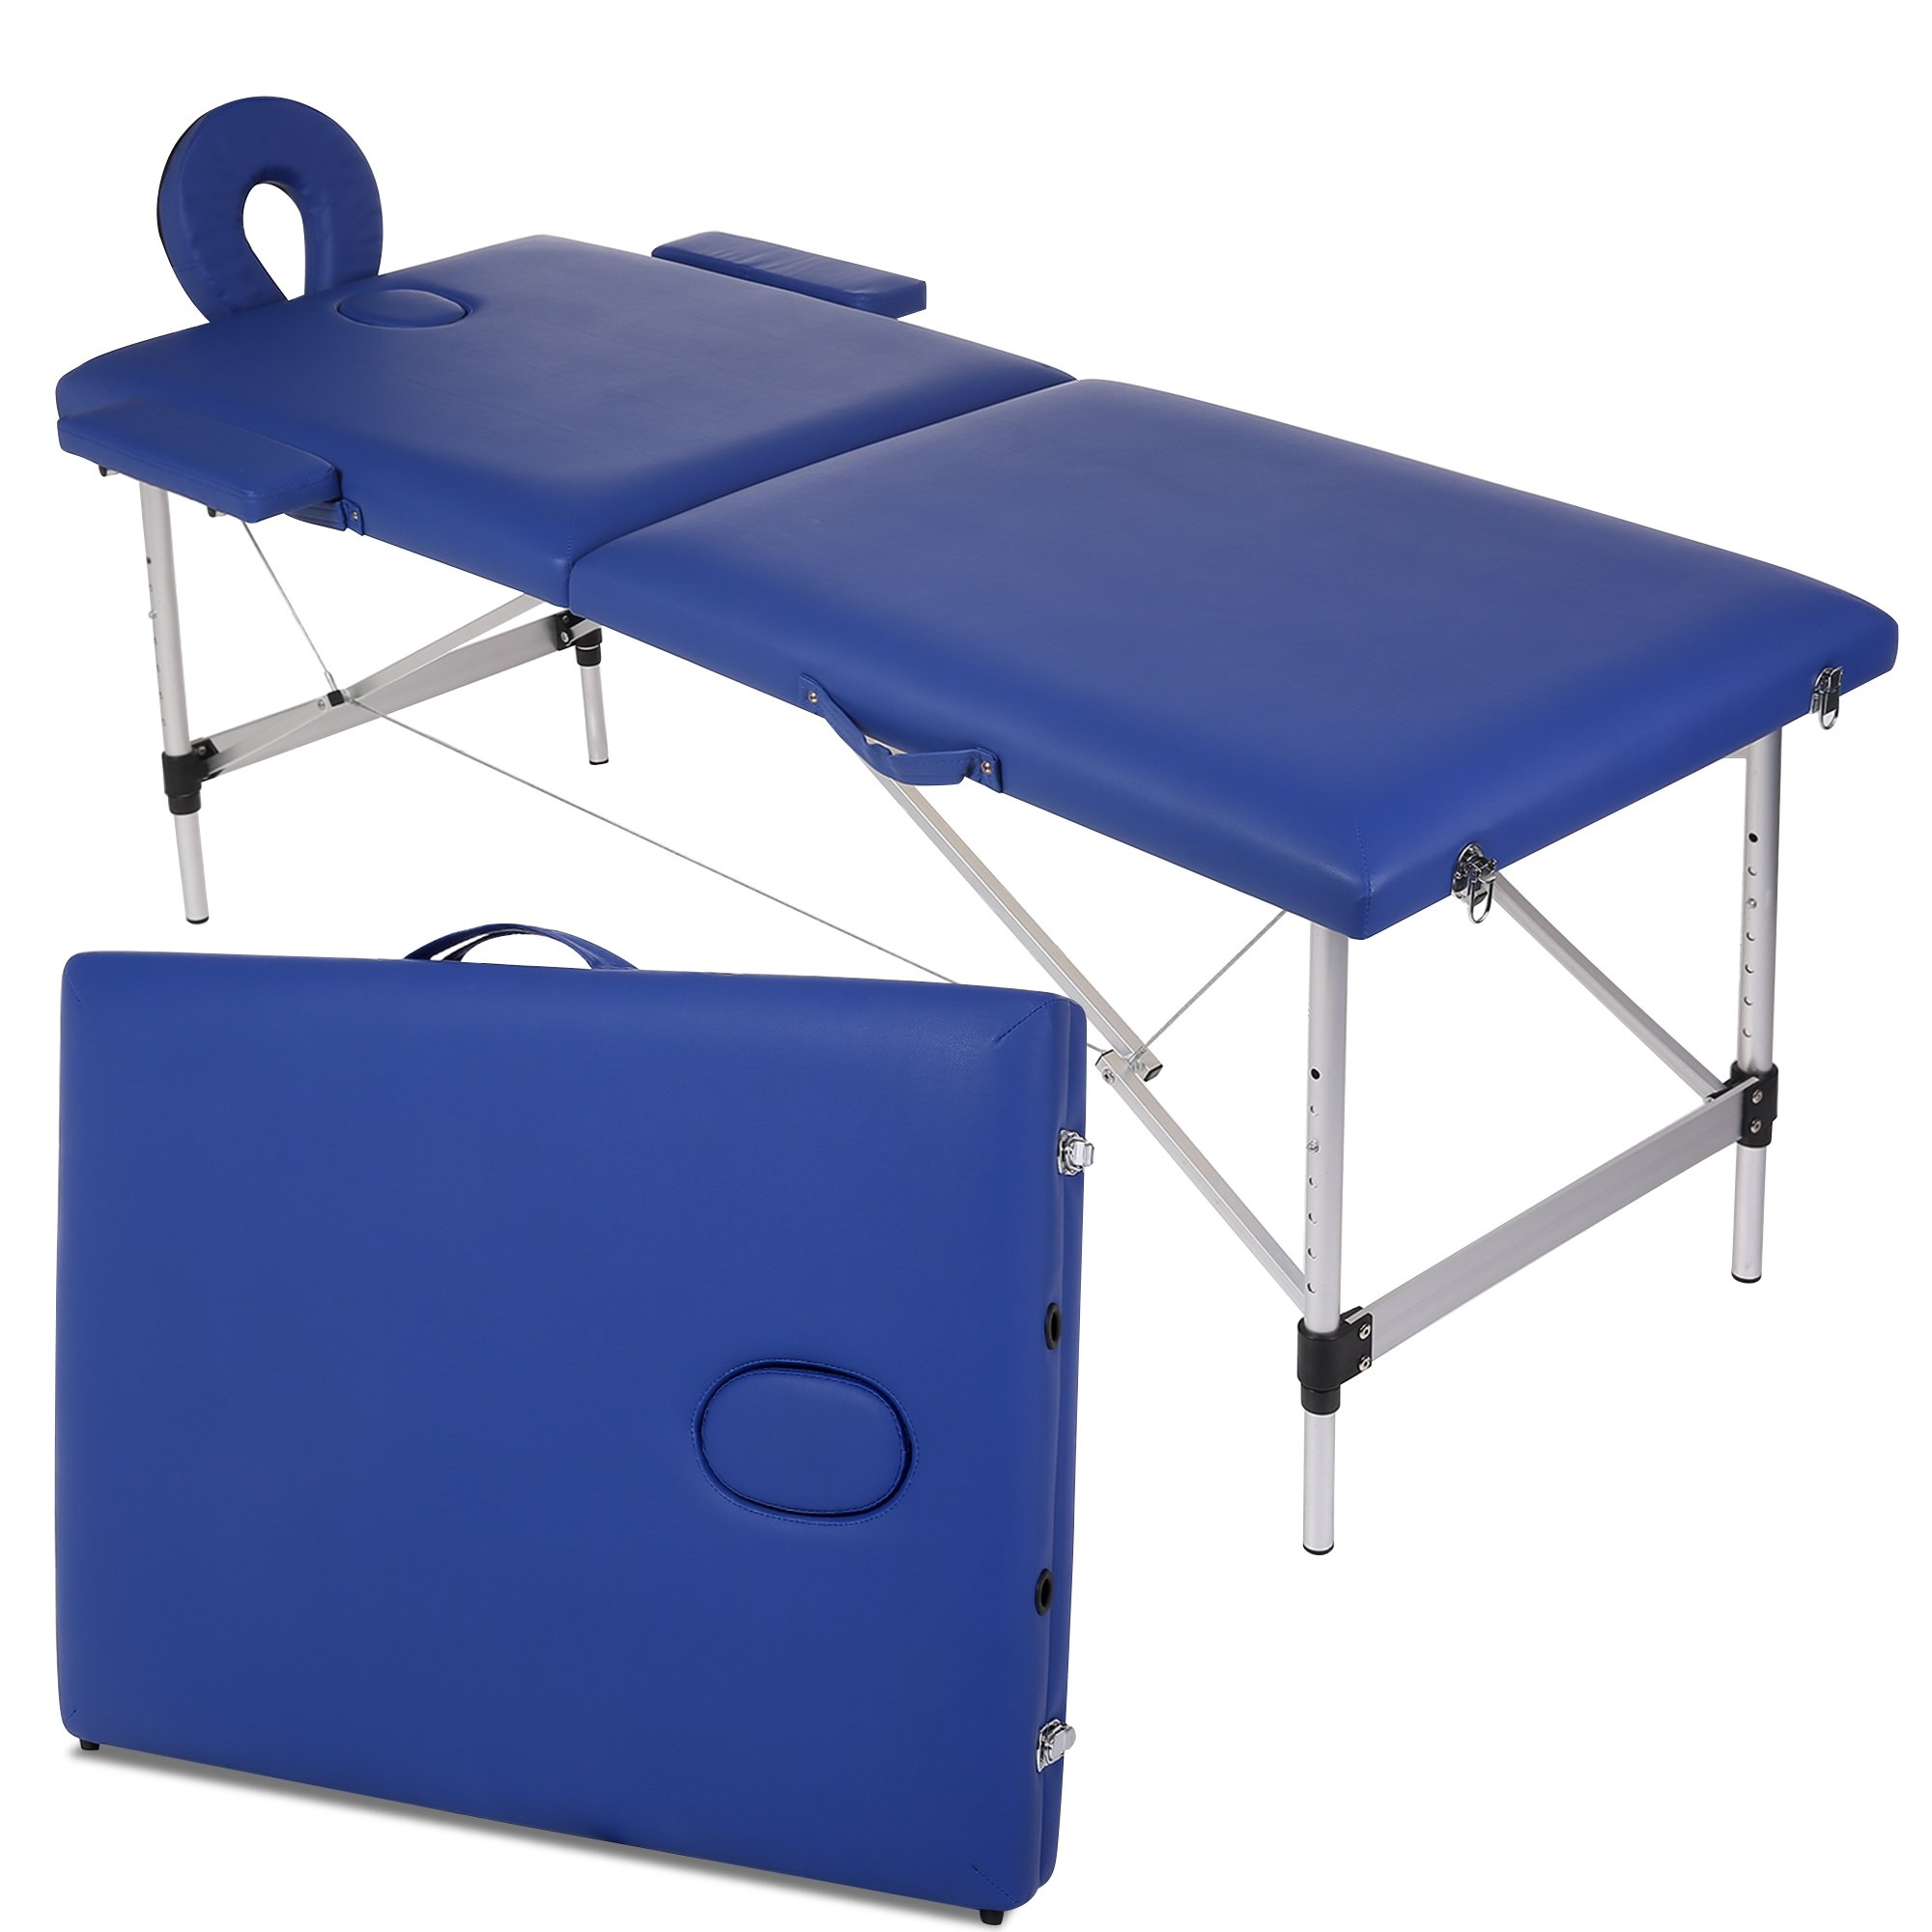 Portable Massage Table Bed with Folding Lightweight Design & Carry Case